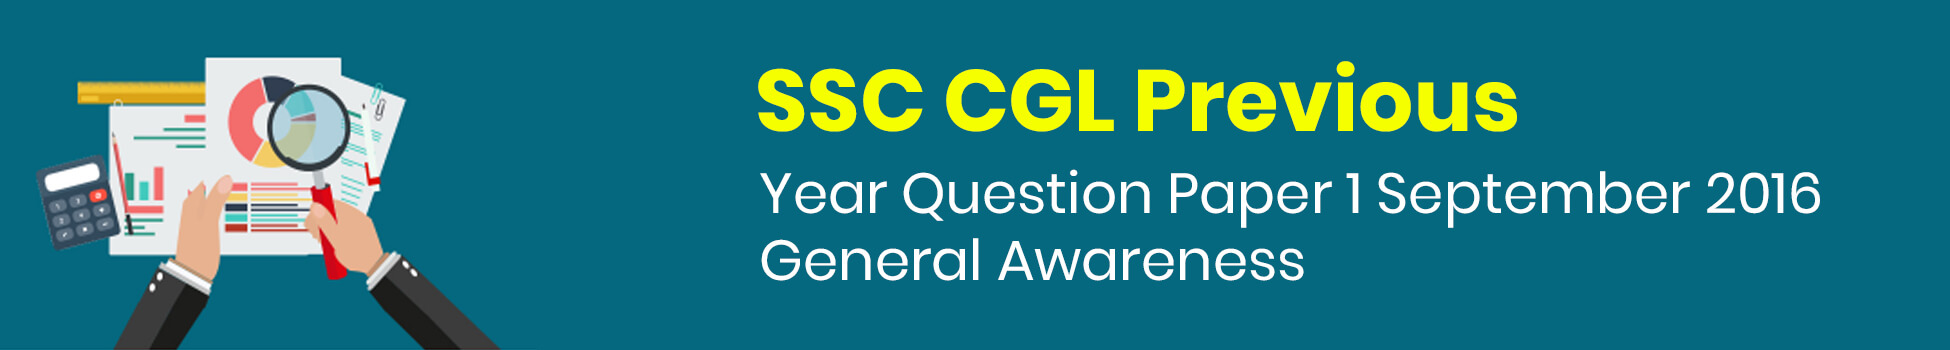 SSC CGL Previous Year Question Paper 1 September 2016 -  General Awareness